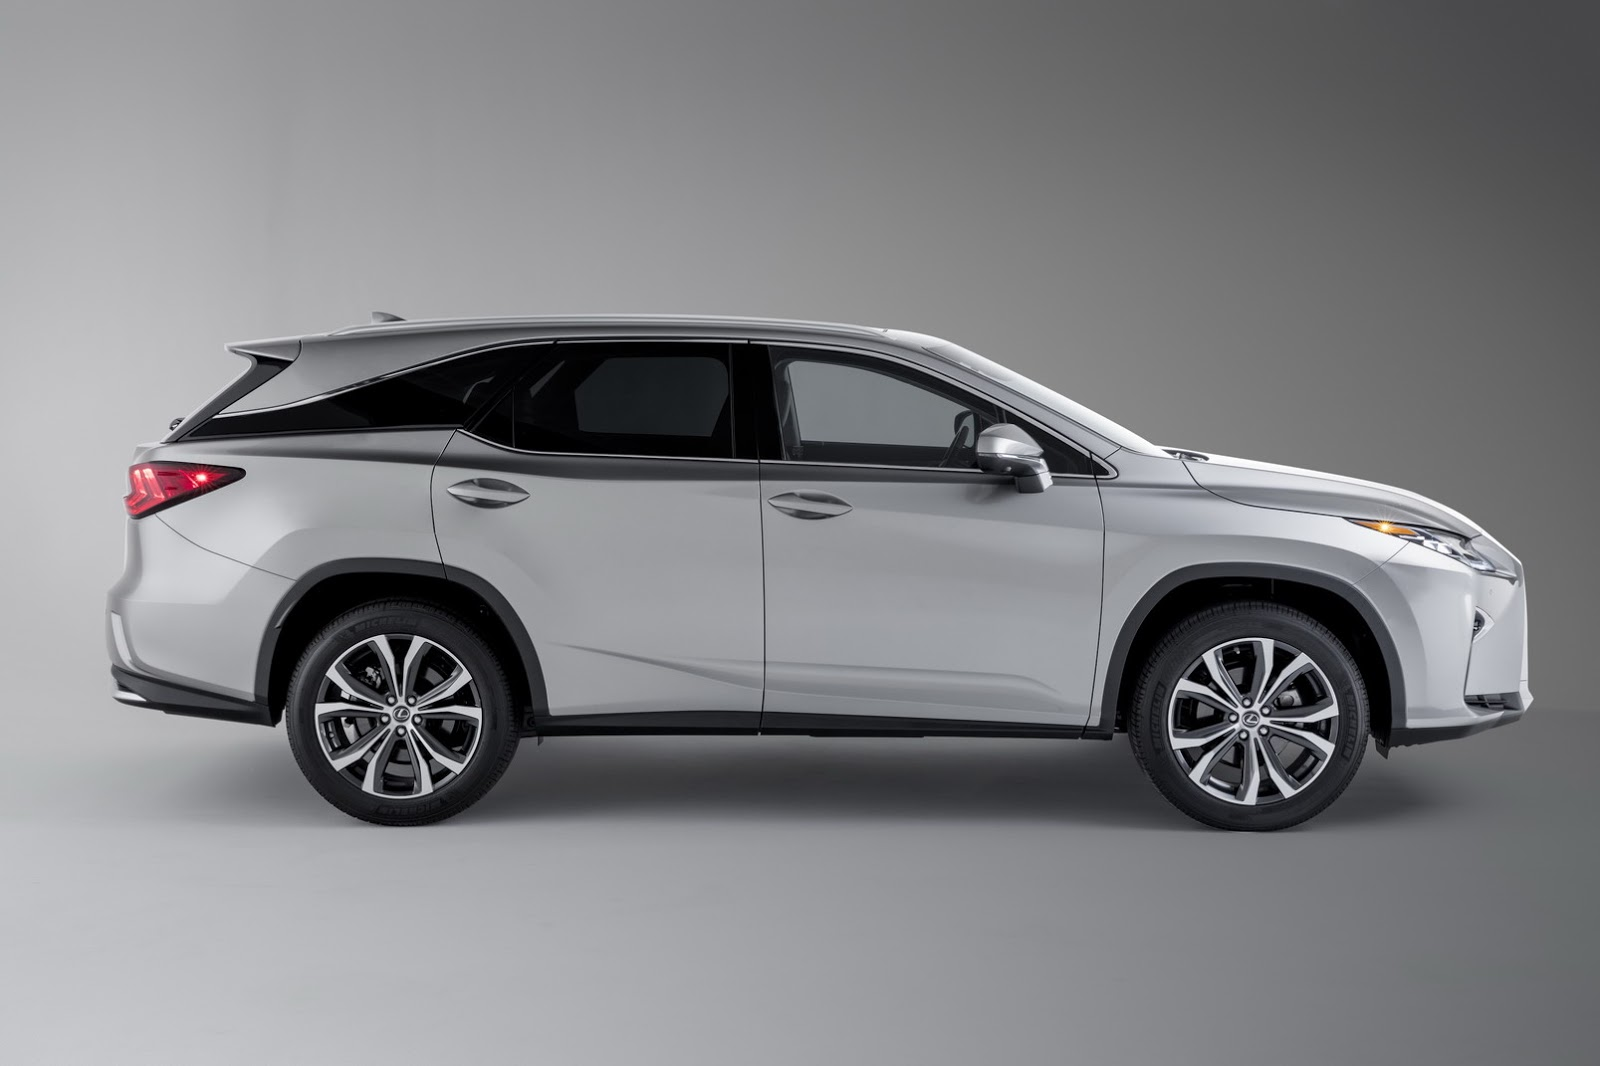 2011 lexus rx350 owners manual user guide manual that easy to read u2022 rh 6geek co 2012 RX 350 2015 RX 350